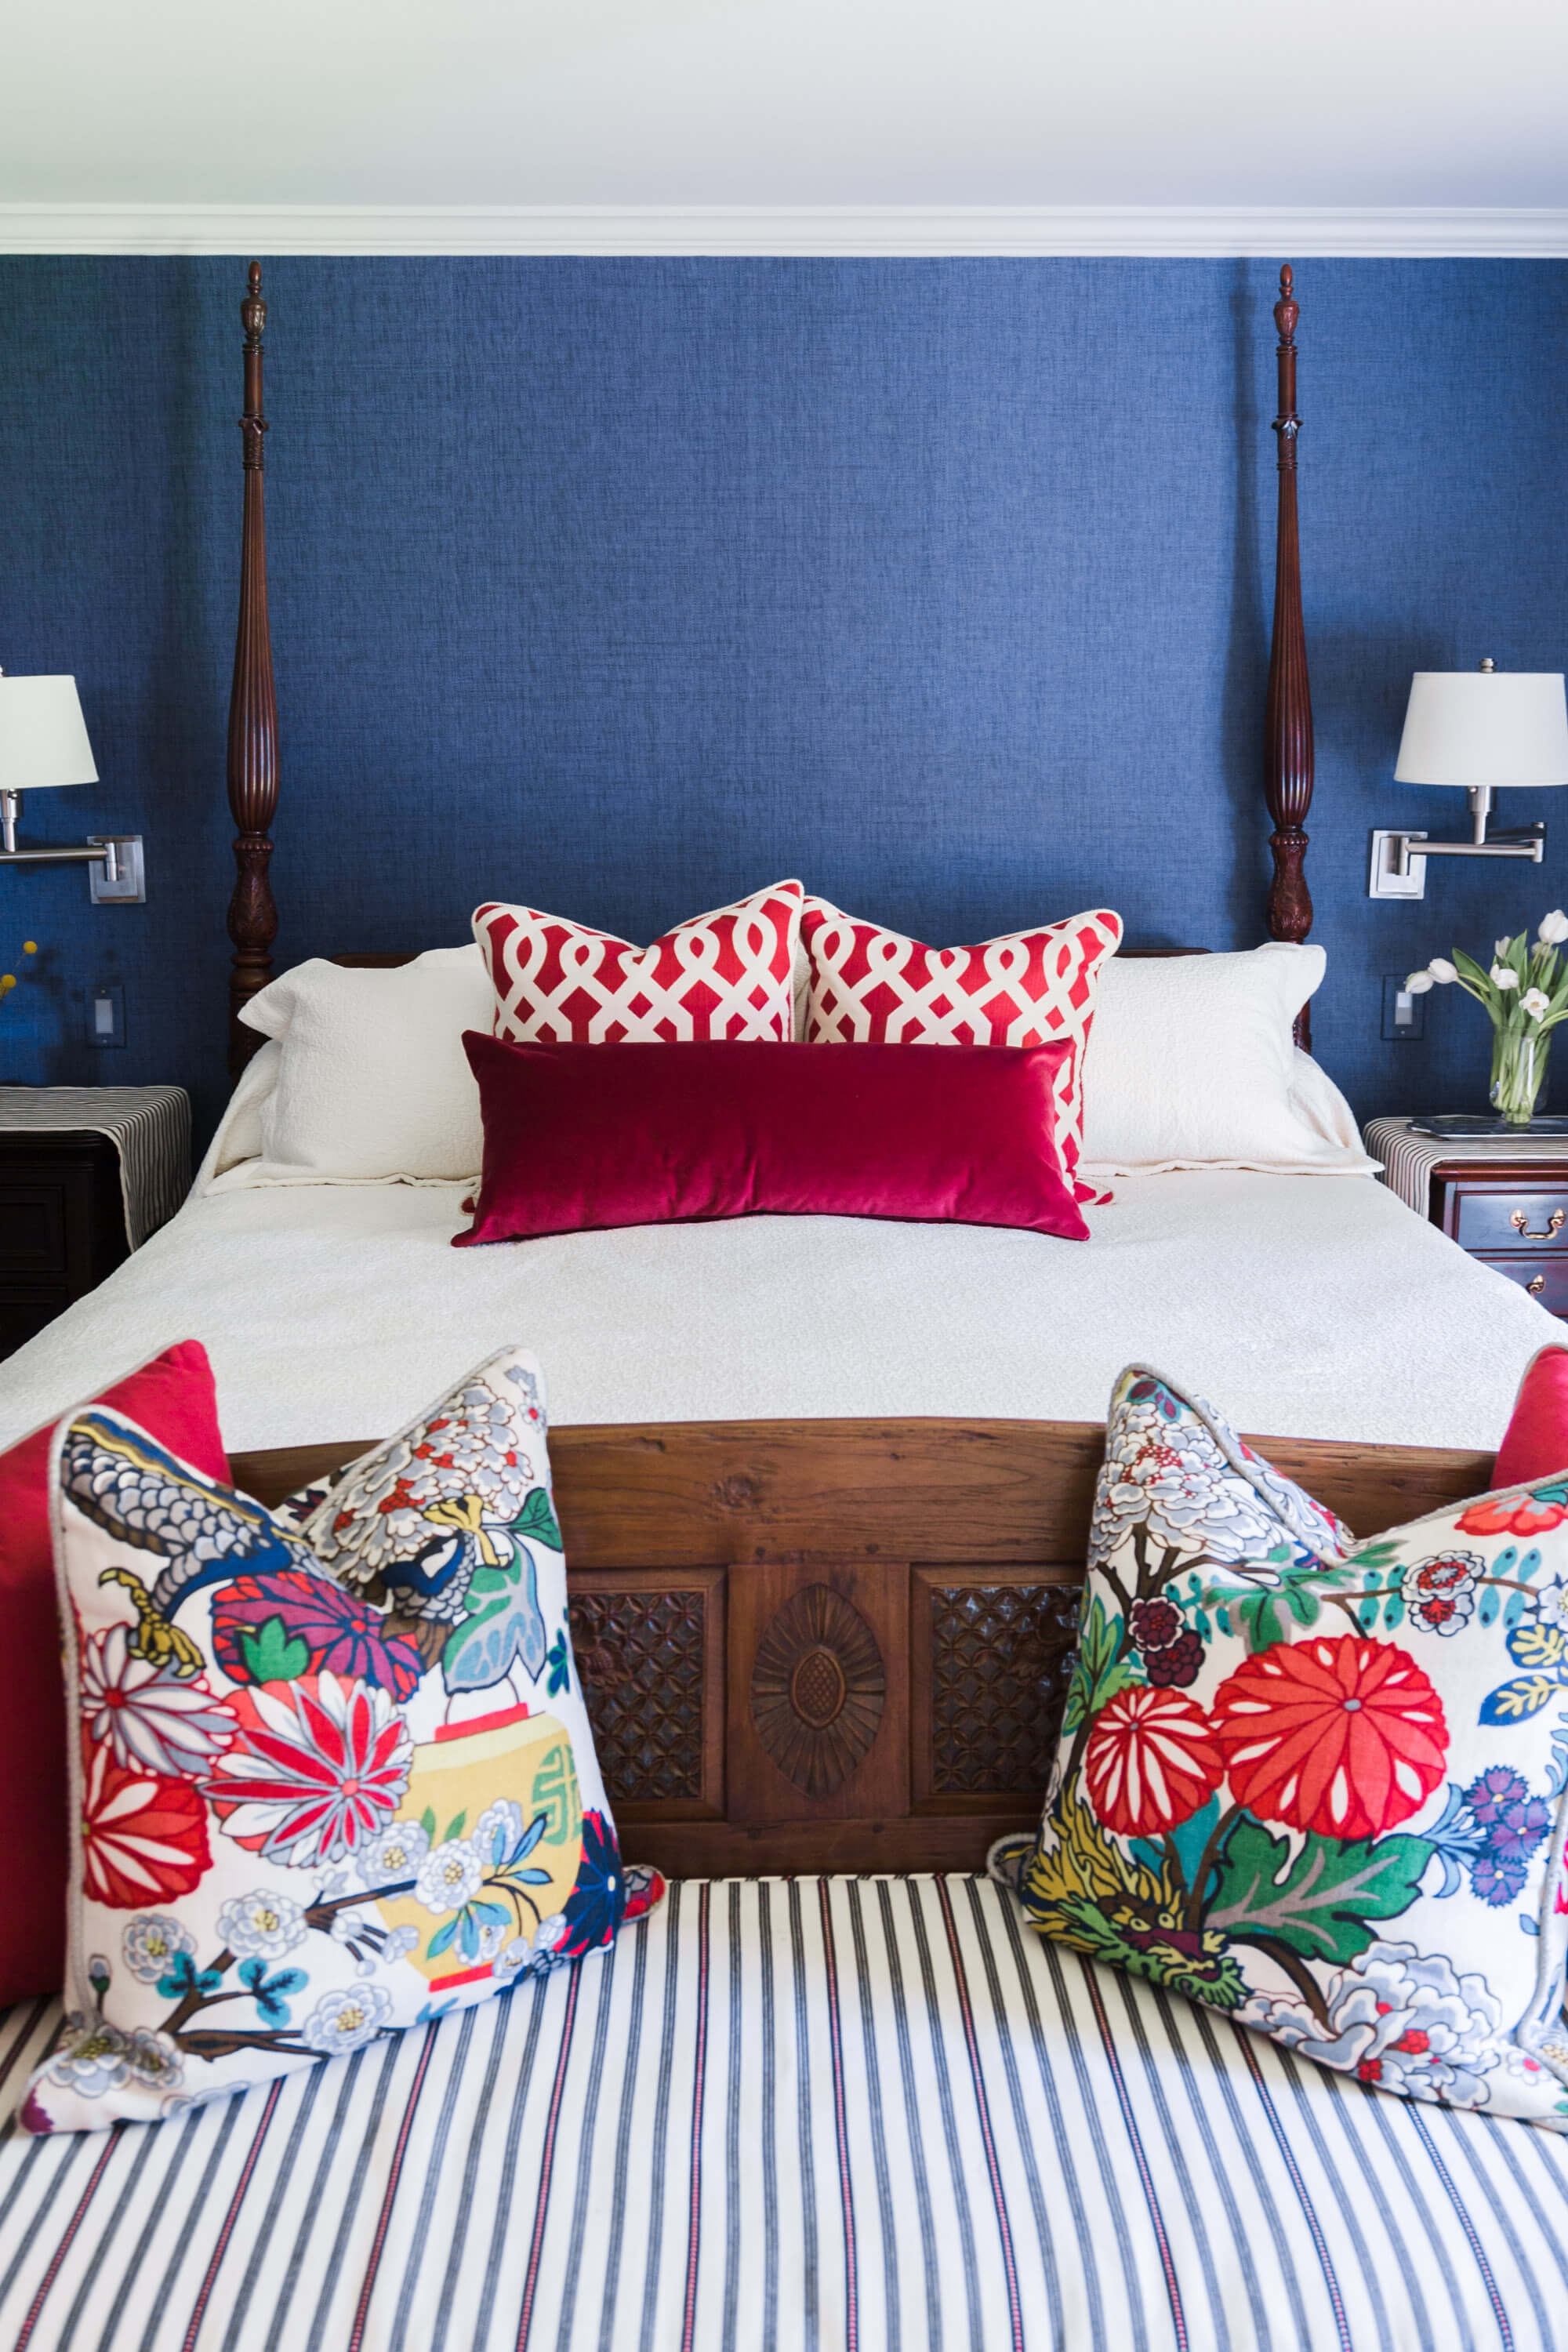 Bed and bench with custom pillows | Designer - Carla Aston, Photo by    Tori Aston    #pillows #chiangmai